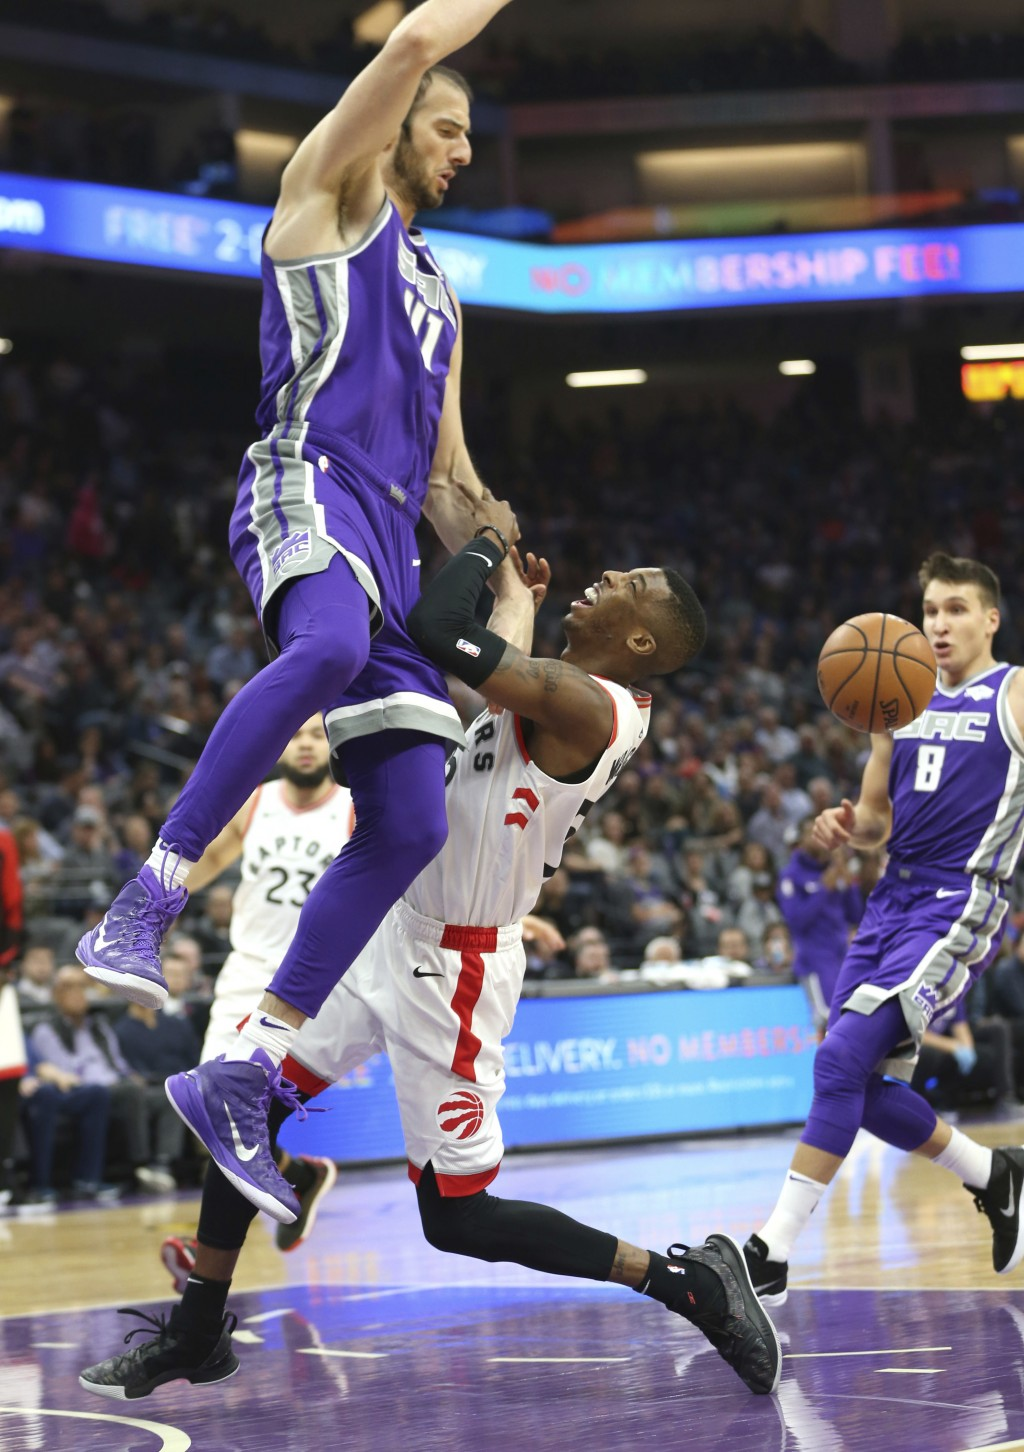 Toronto Raptors guard Delon Wright, right, is fouled by Sacramento Kings center Kosta Koufos, left, during the first quarter of an NBA basketball game